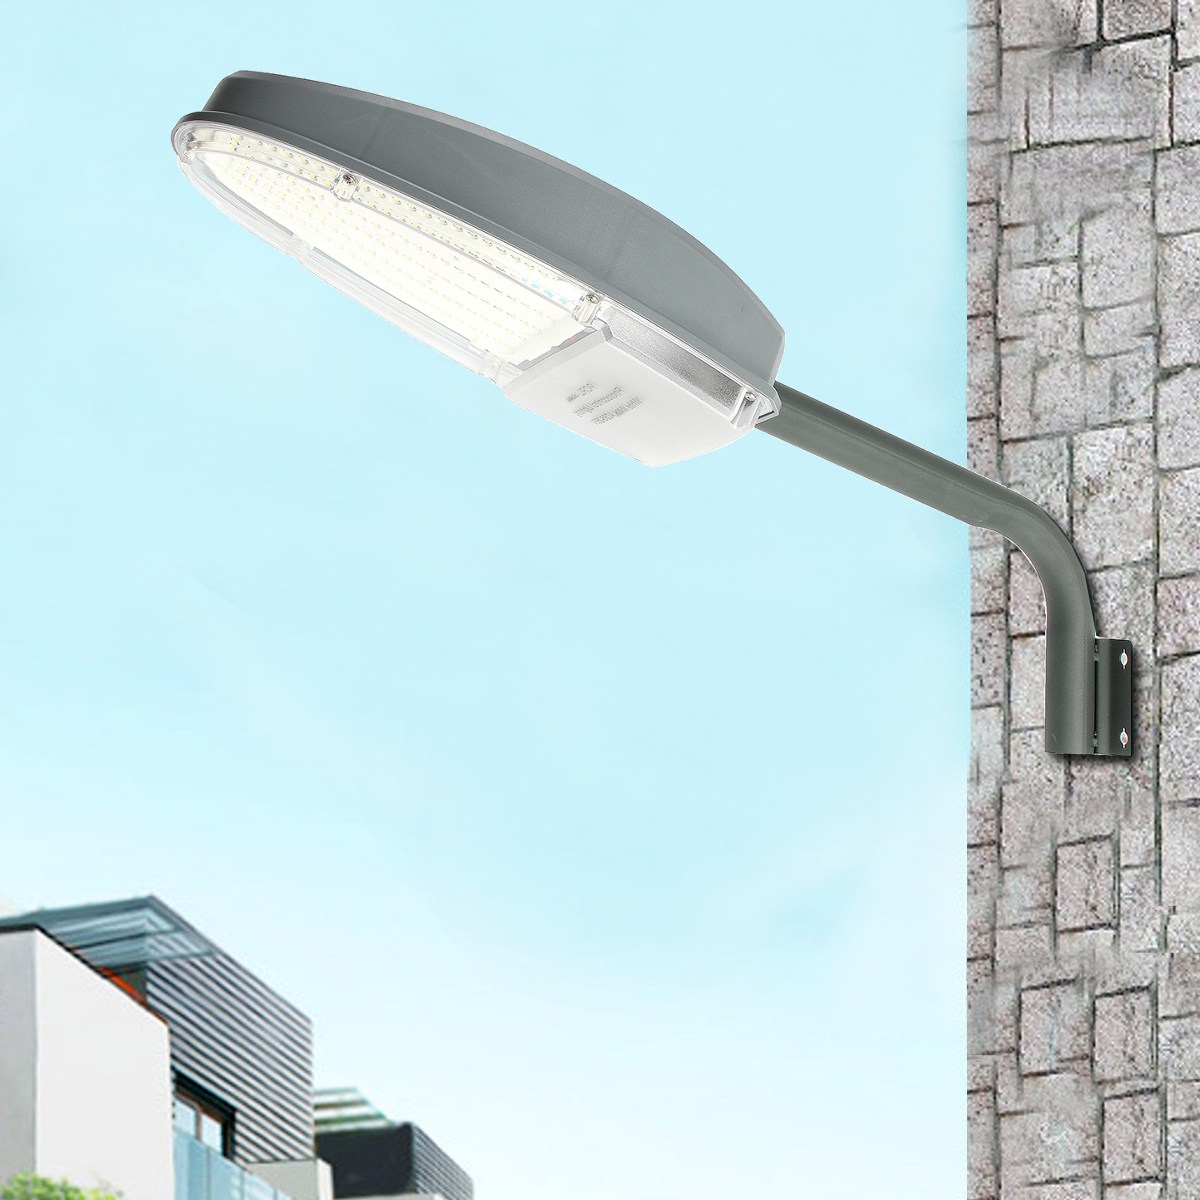 30W Light Sensor 2400LM 144 LED Street Light Garden Road Light Outdoor Waterproof Wall Security Lamp AC85-265V With Mounting Arm